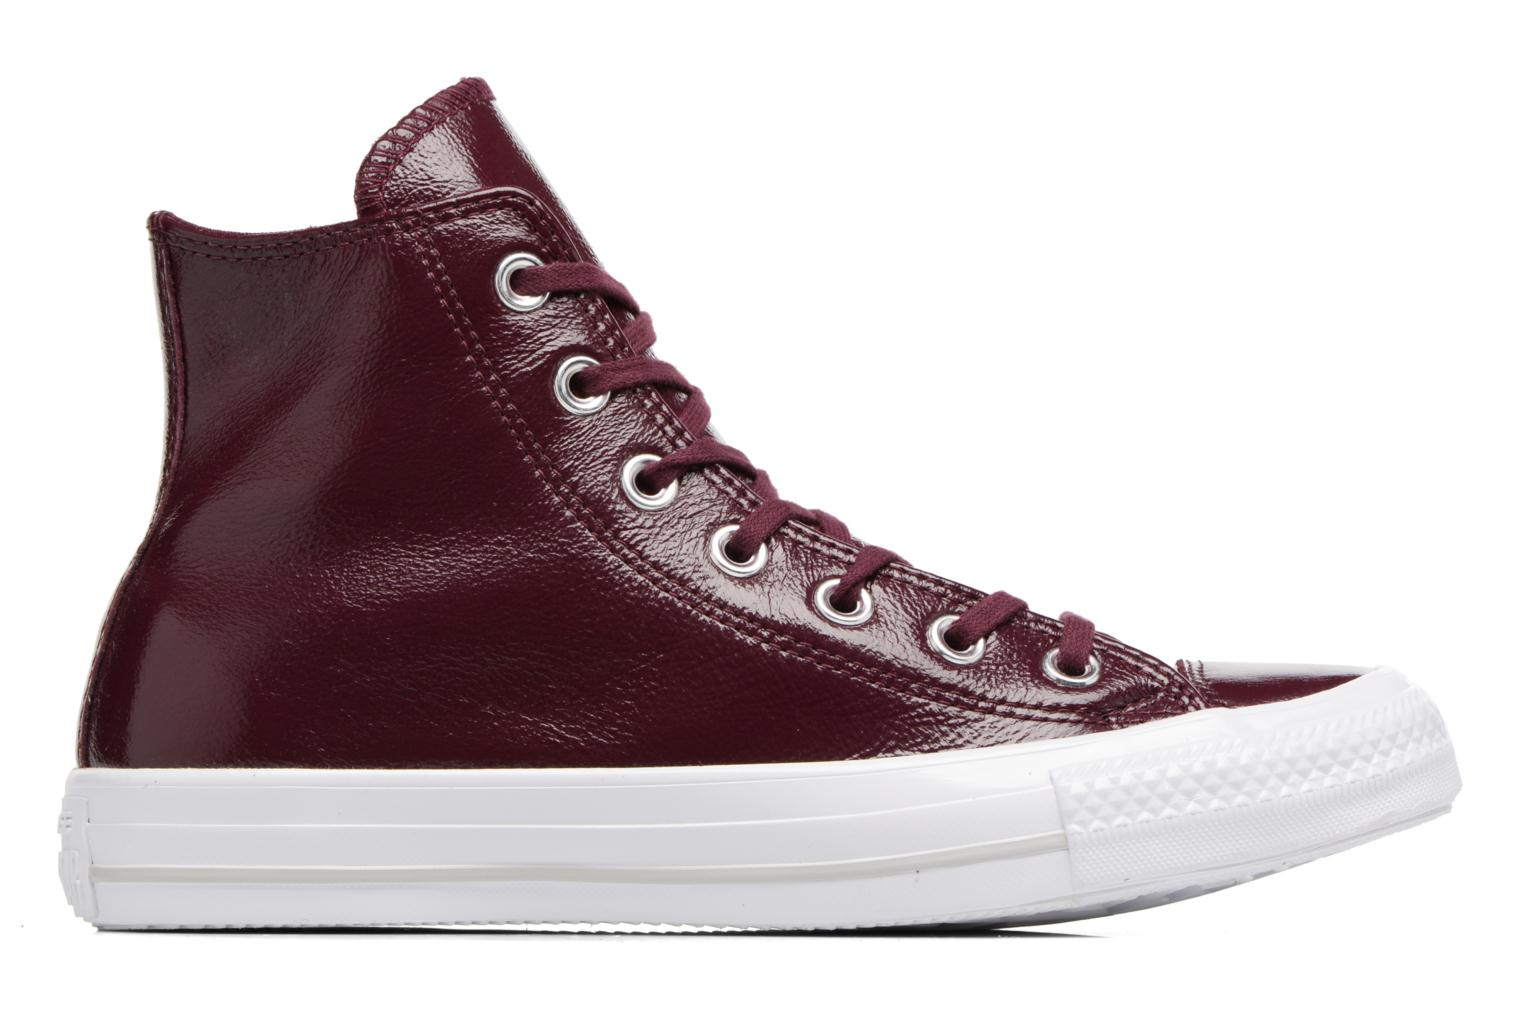 Sneakers Converse Chuck Taylor All Star Crinkled Patent Leather Hi Bordeaux achterkant